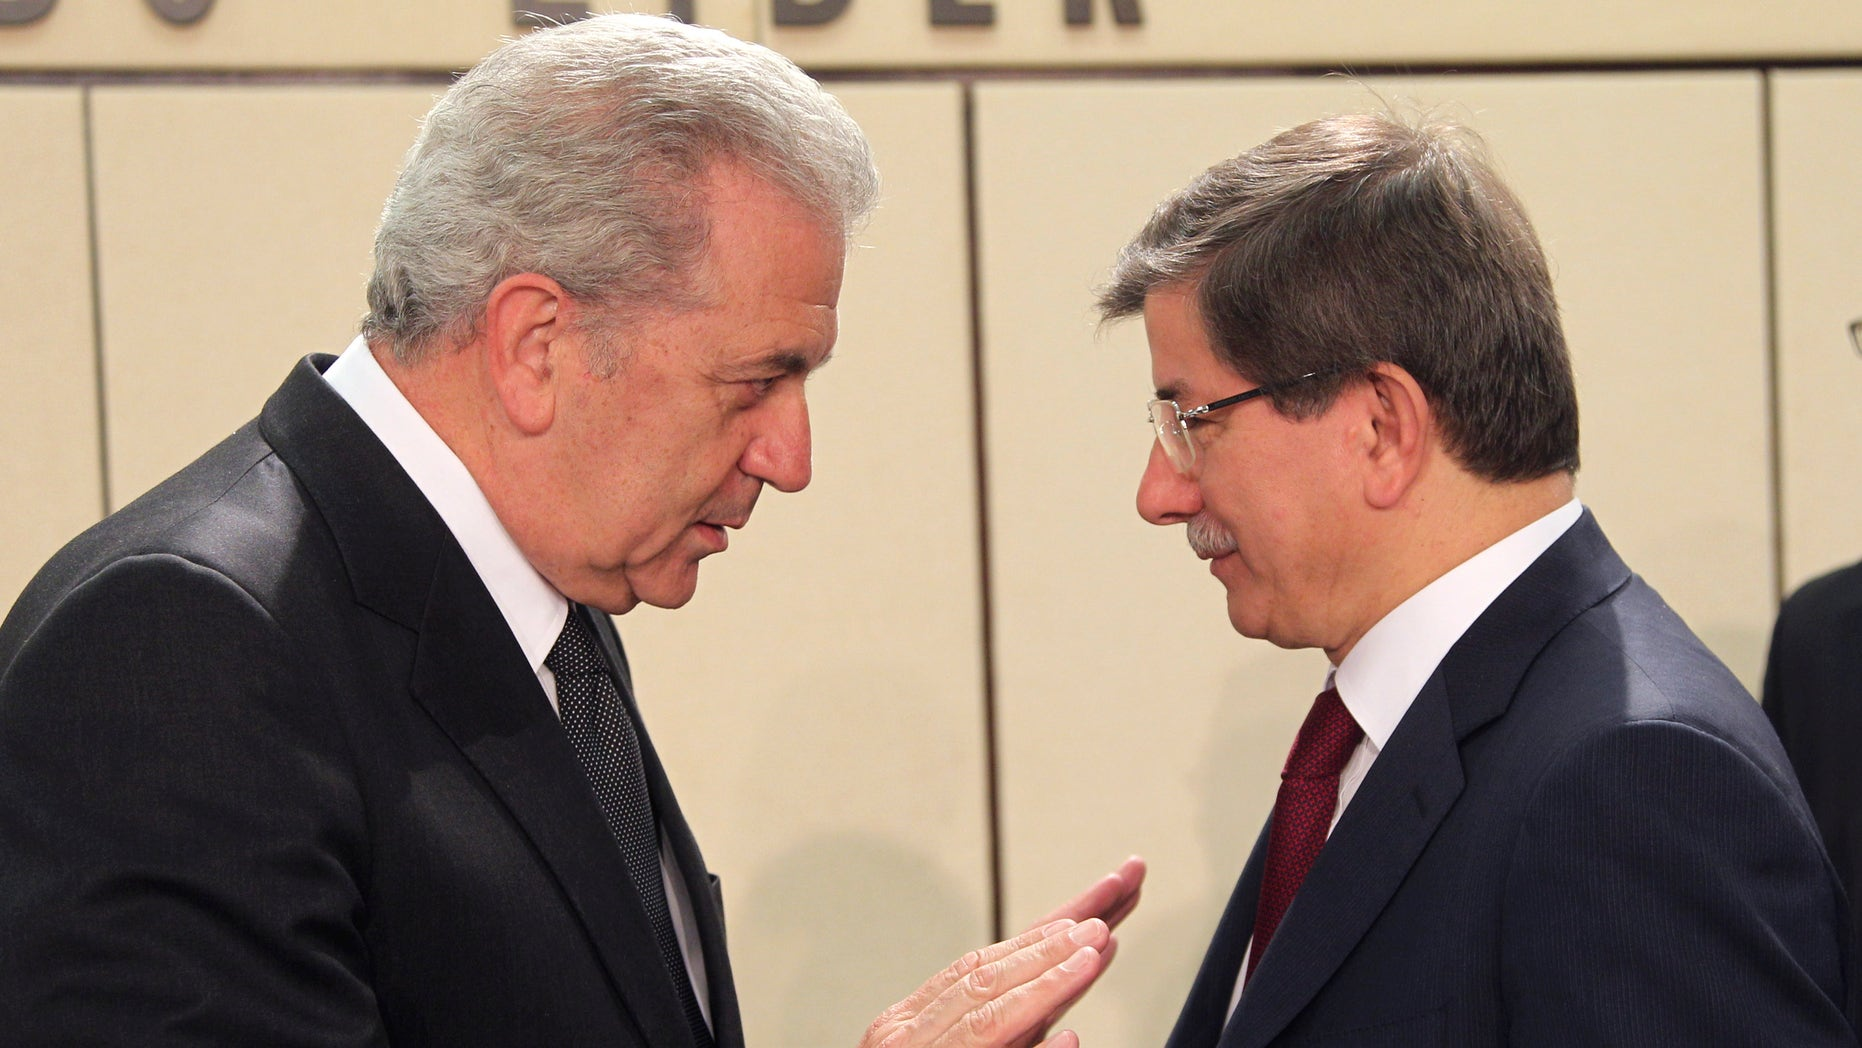 Greek Foreign Minister Dimitrios Avramopoulos, left, talks with Turkish counterpart Ahmet Davutoglu, during a NATO foreign ministers meeting at NATO headquarters in Brussels, Tuesday, April 23, 2013. NATO foreign ministers meet in Brussels to discuss the situation in Syria and Afghanistan. (AP Photo/Yves Logghe)